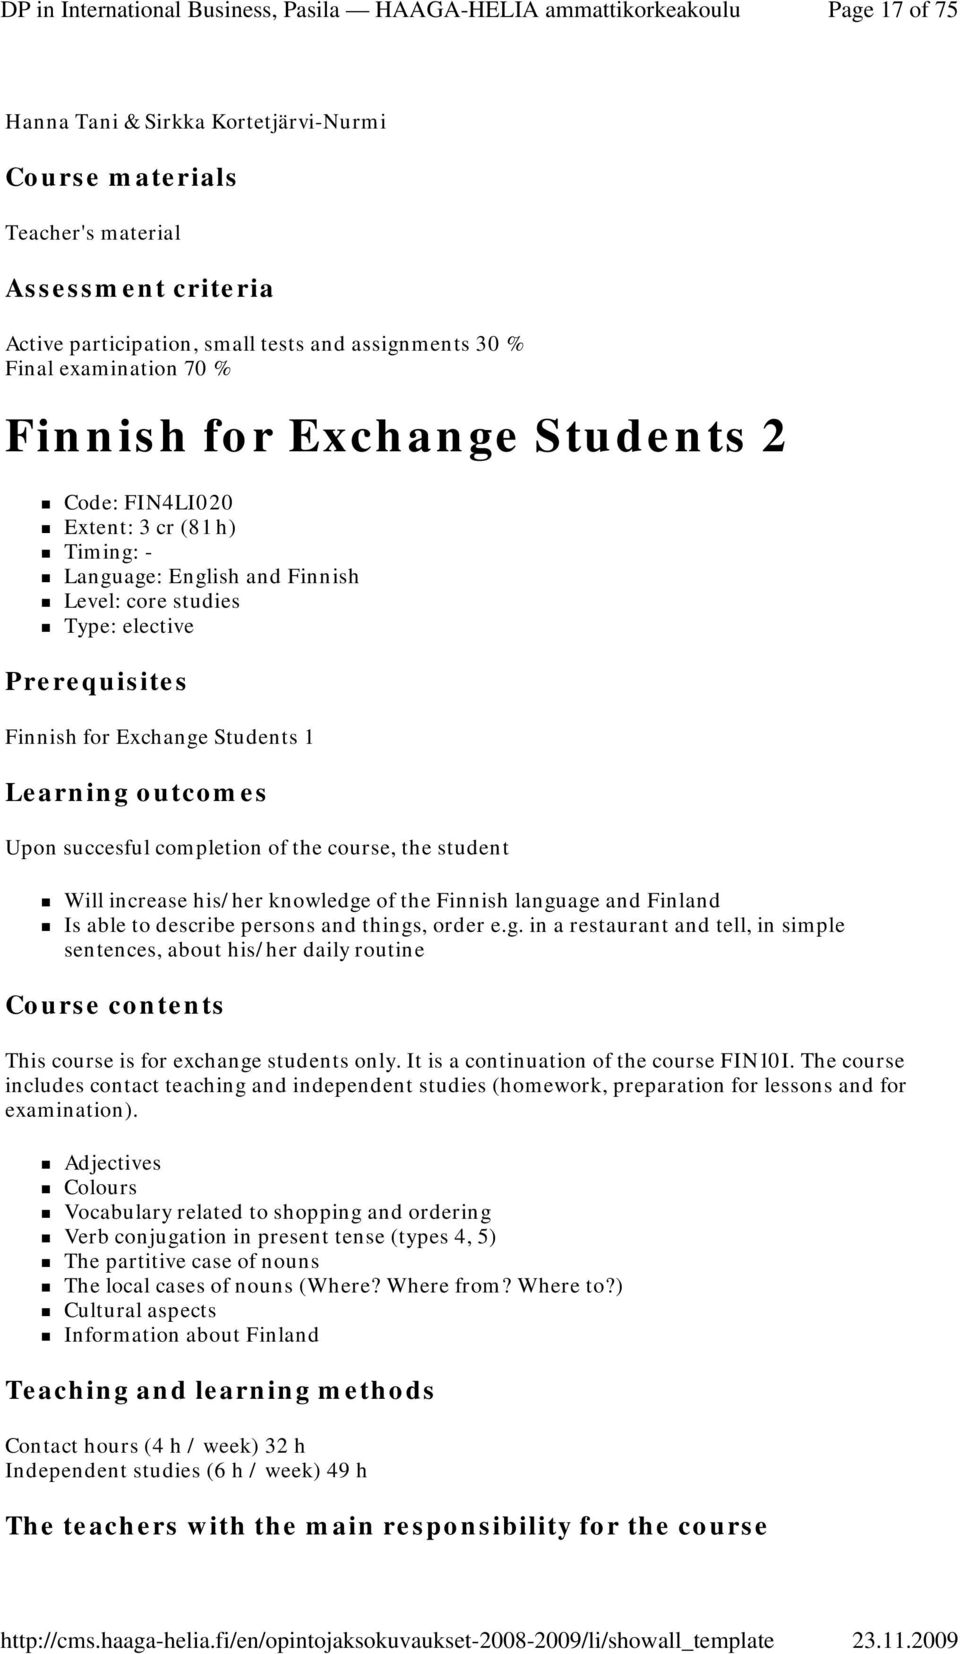 his/her knowledge of the Finnish language and Finland Is able to describe persons and things, order e.g. in a restaurant and tell, in simple sentences, about his/her daily routine This course is for exchange students only.